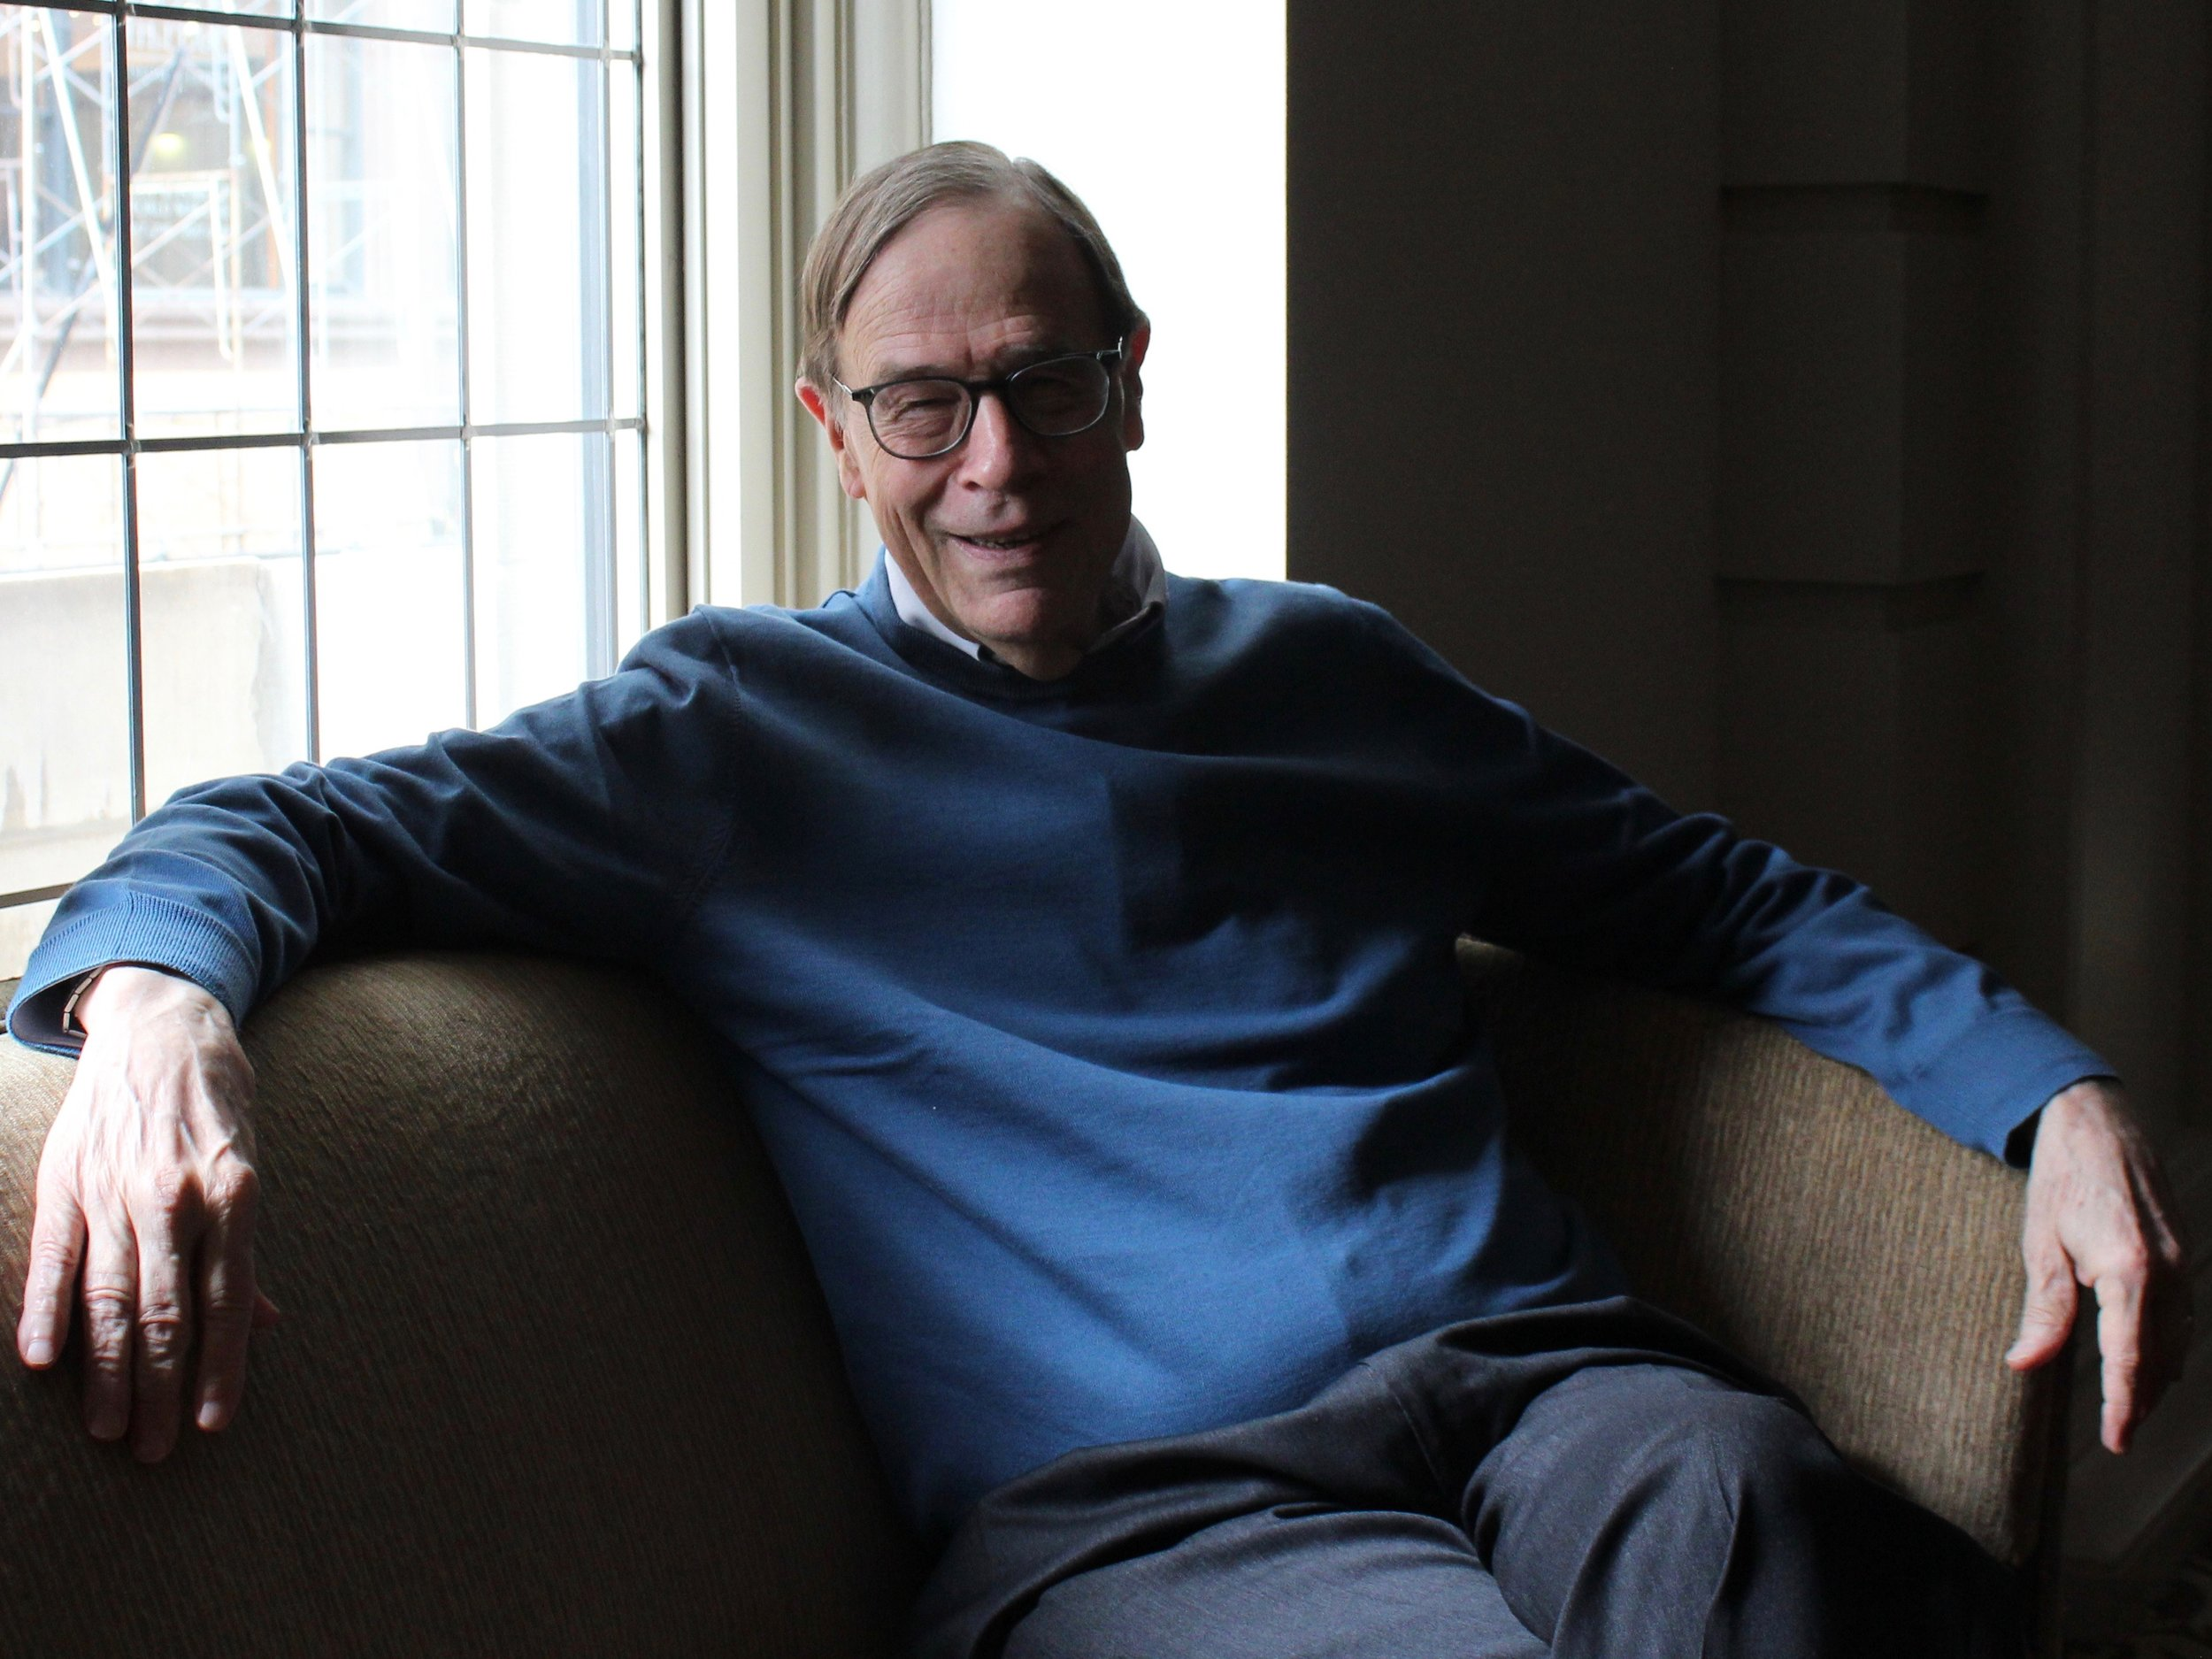 Rev. Alexander E. Sharp sits for an interview at the University Club in Chicago. (One Illinois/Ted Cox)